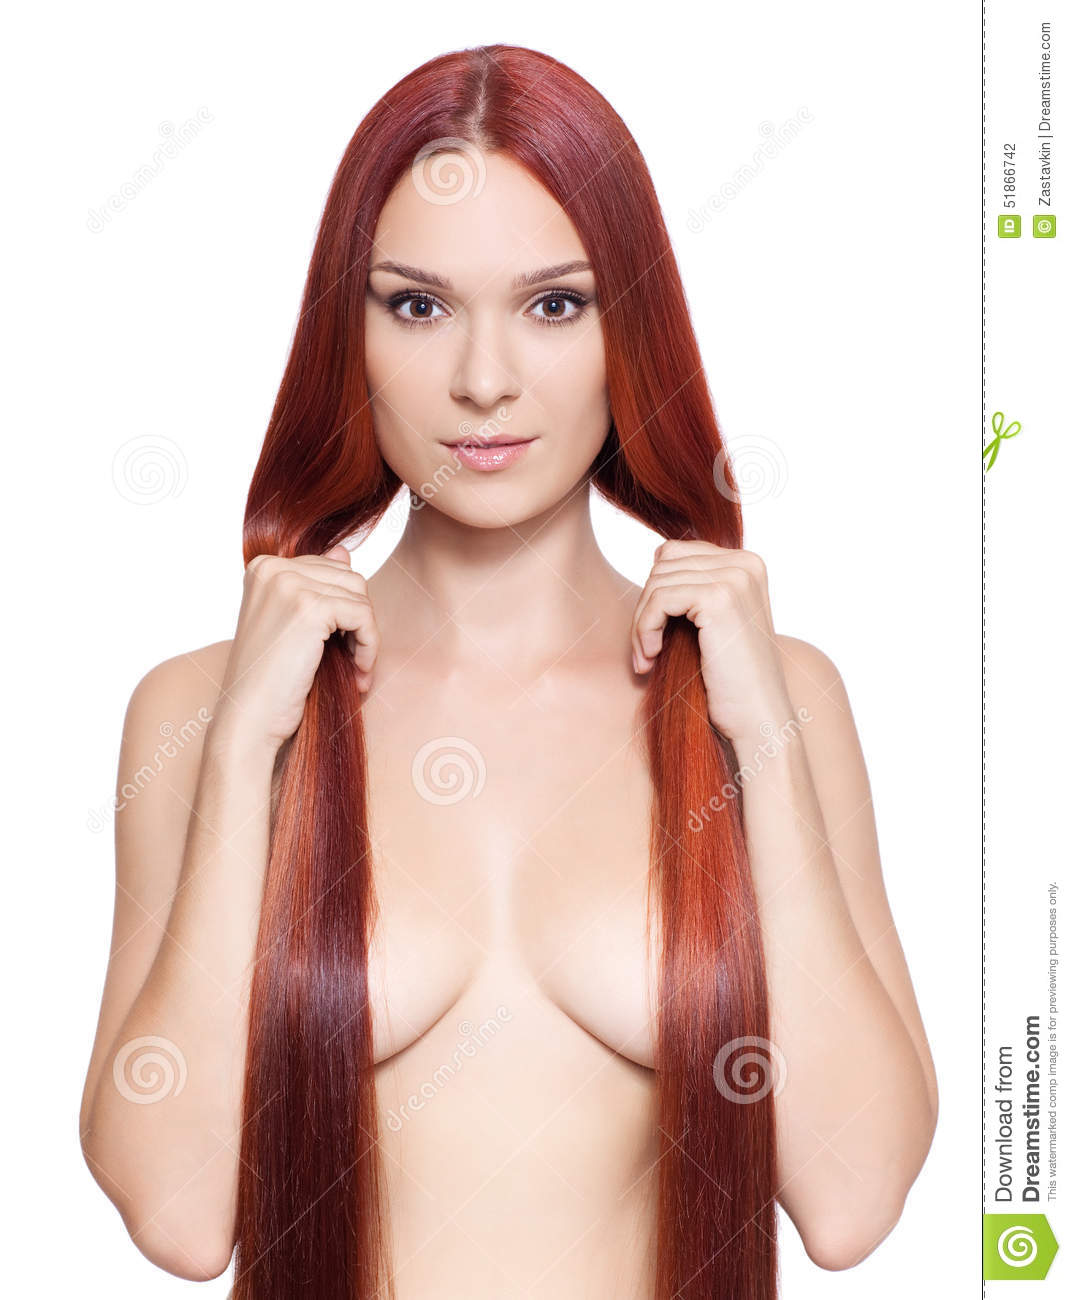 Nude Women With Hair 87